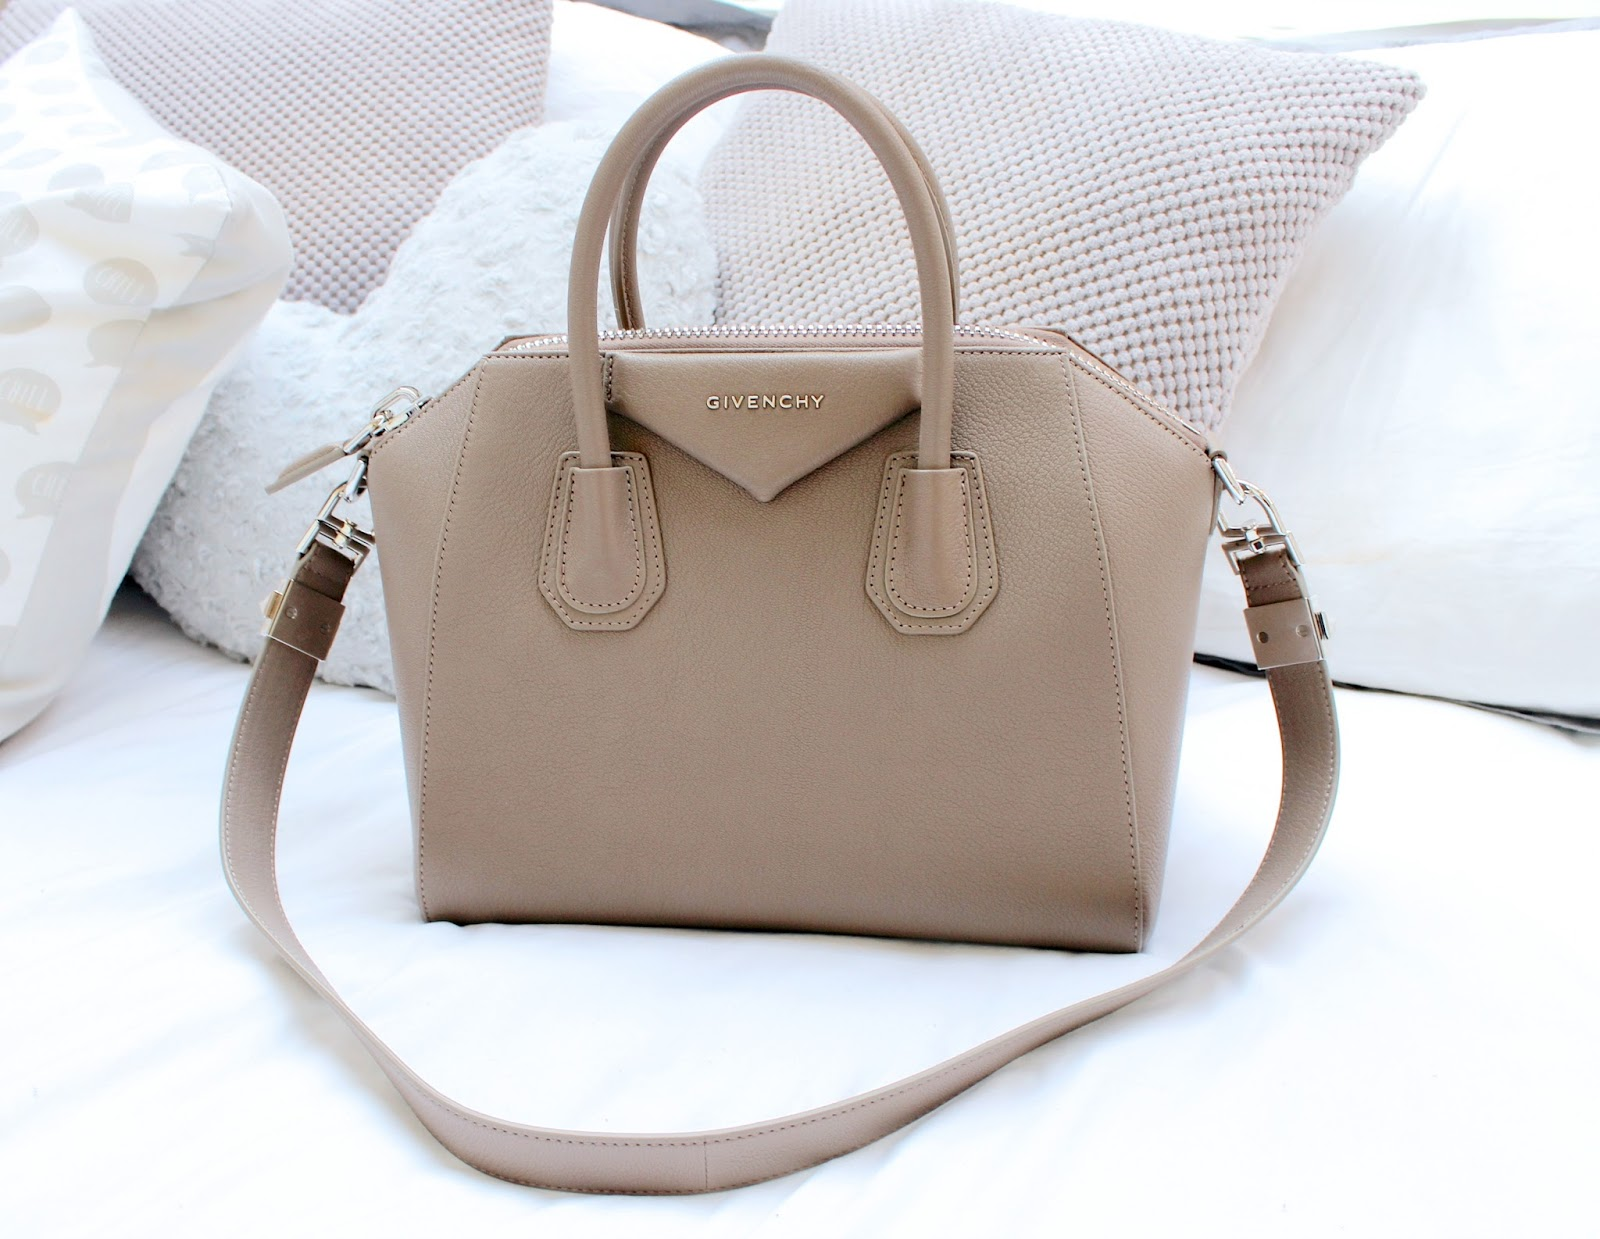 For The Longest Time I Ve Wanted To Treat Myself A Designer Handbag Already Have Louis Vuitton That My Dad Kindly Bought Me As Gift But